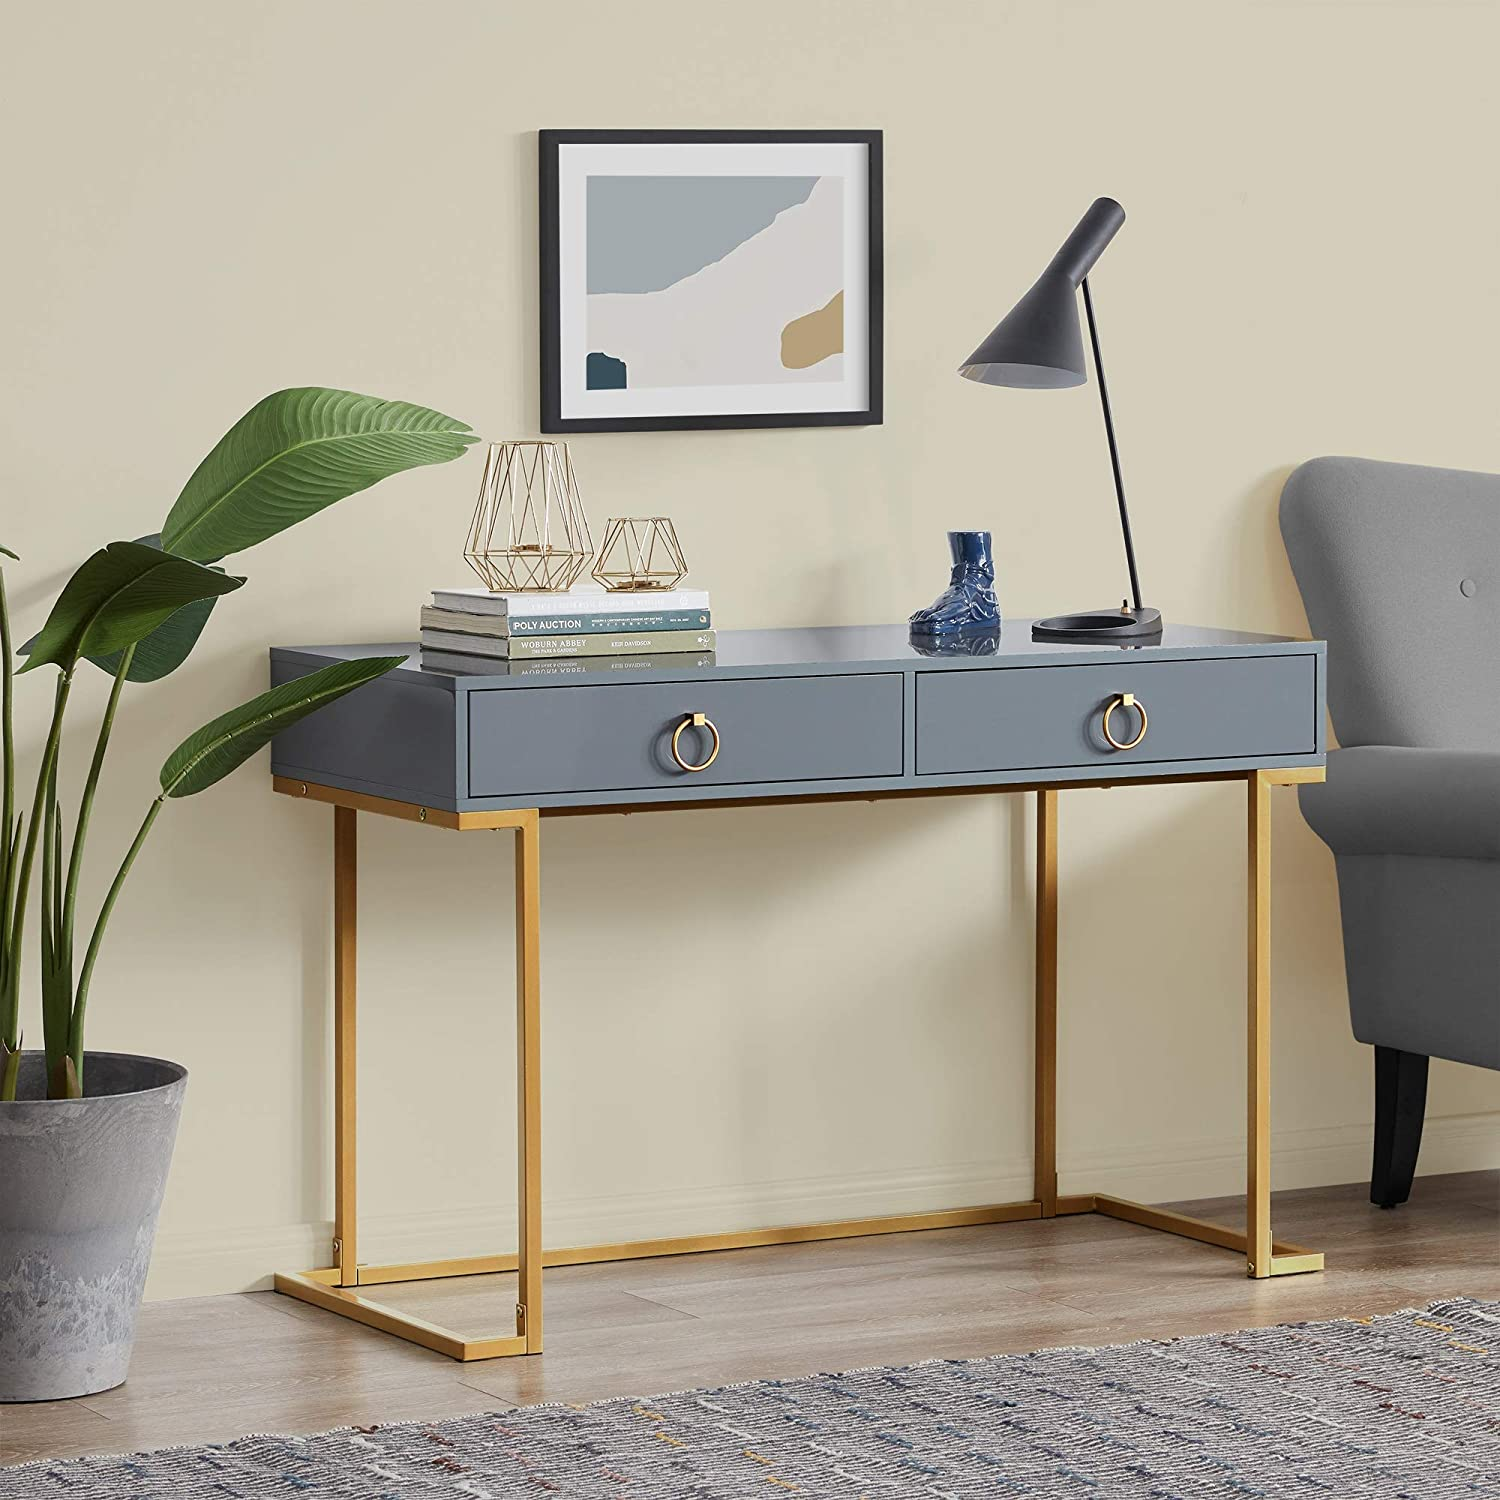 BELLEZE Home Office Two-Drawers Computer Desk Vanity Table, Wood and Metal, Gray and Gold